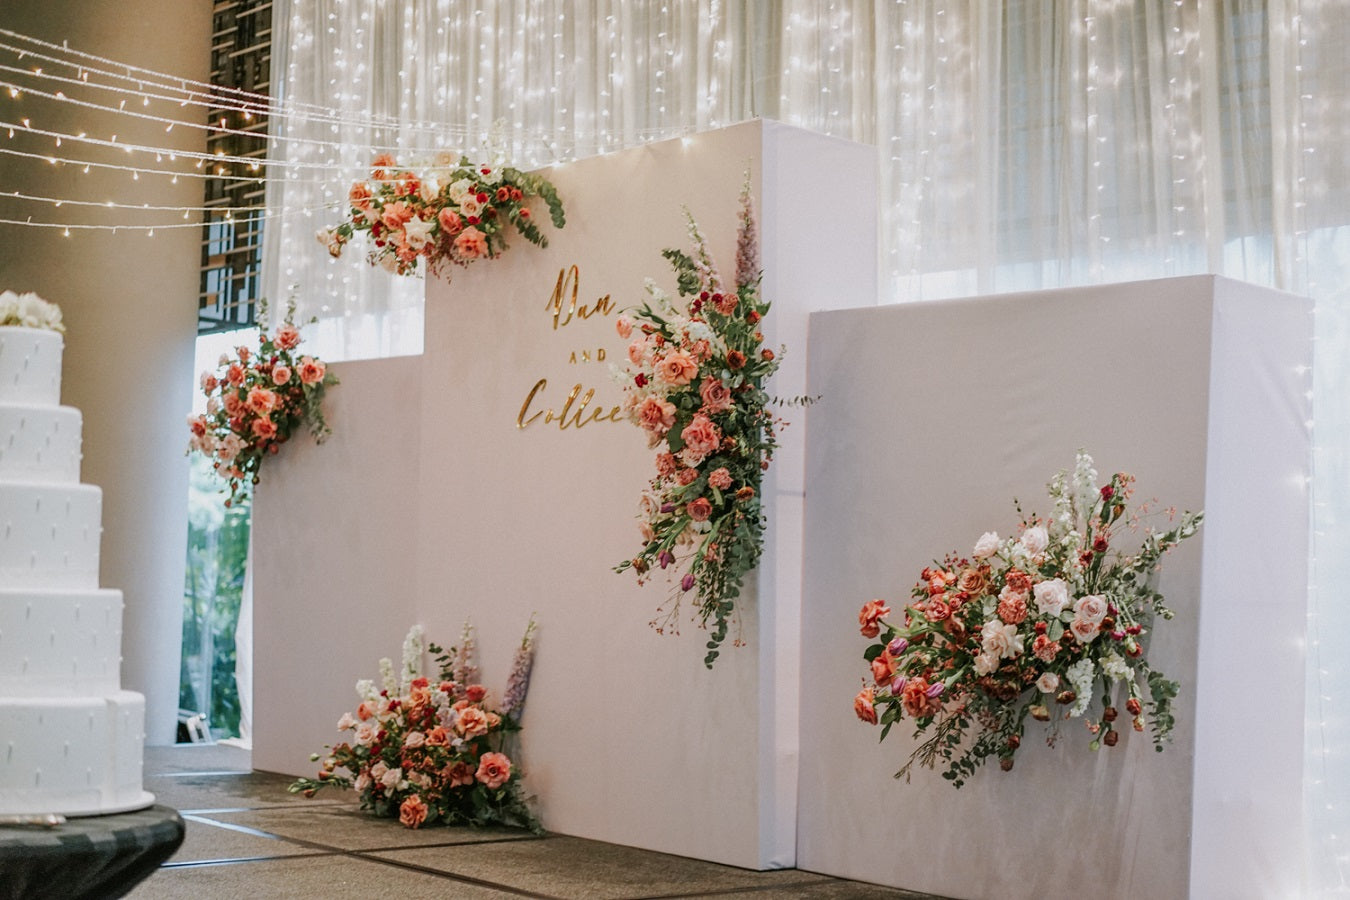 Floating flowers for wedding ceremony florals on main stage with cascading string lights